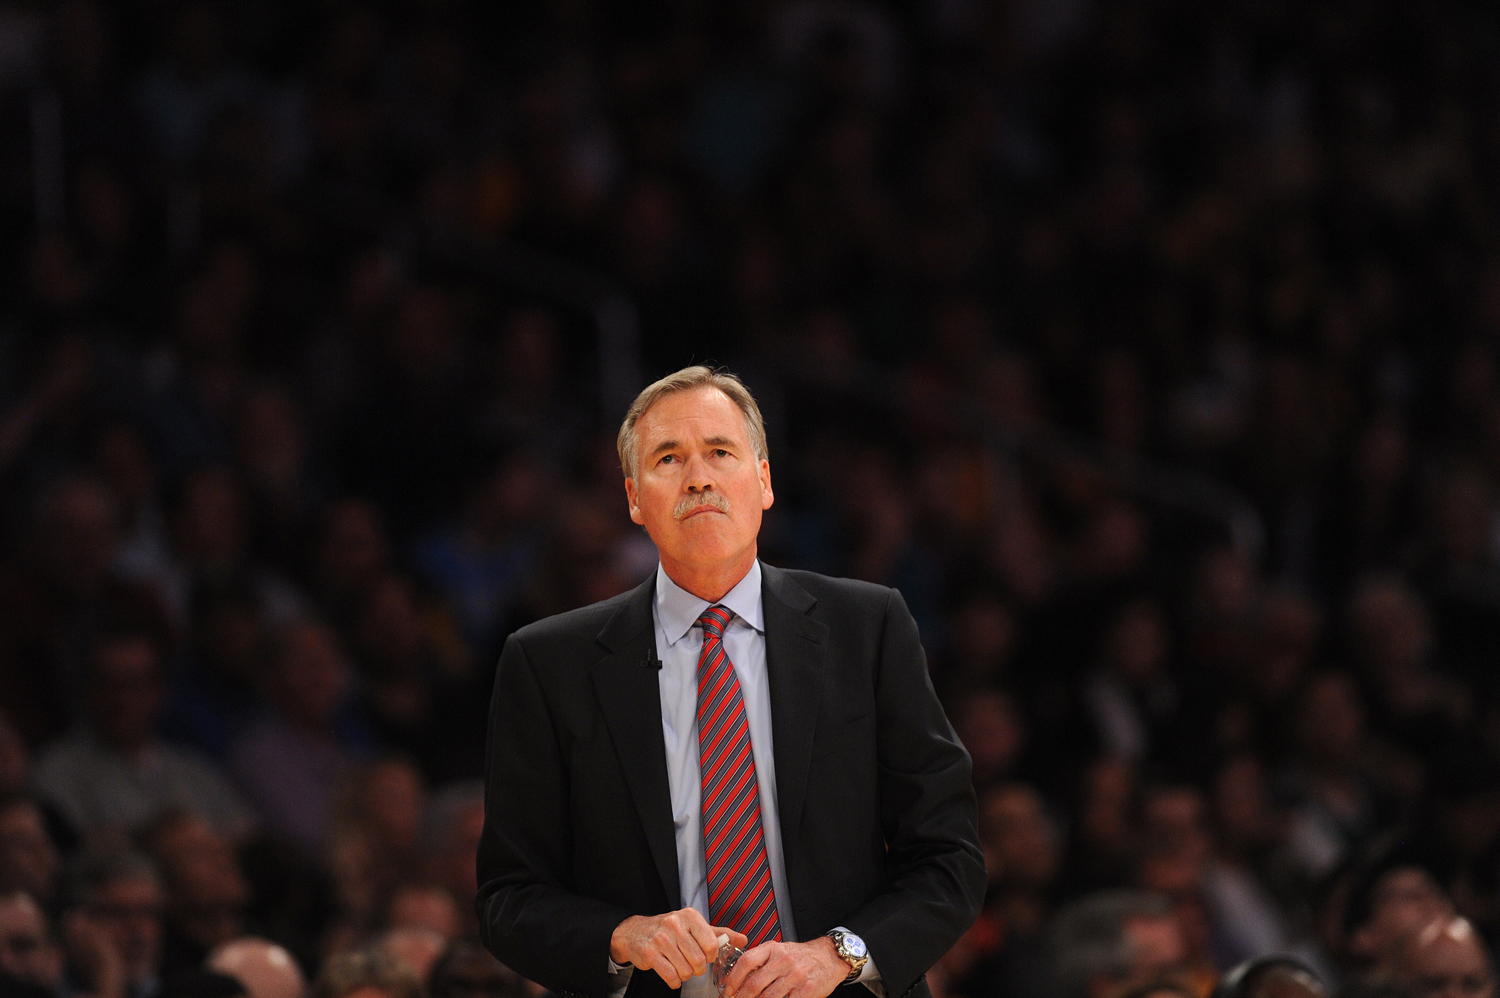 Mike D'Antoni watches from the sidelines during the NBA game between the Los Angeles Lakers and the Boston Celtics at the Staples Center in Los Angeles on Feb. 21, 2014